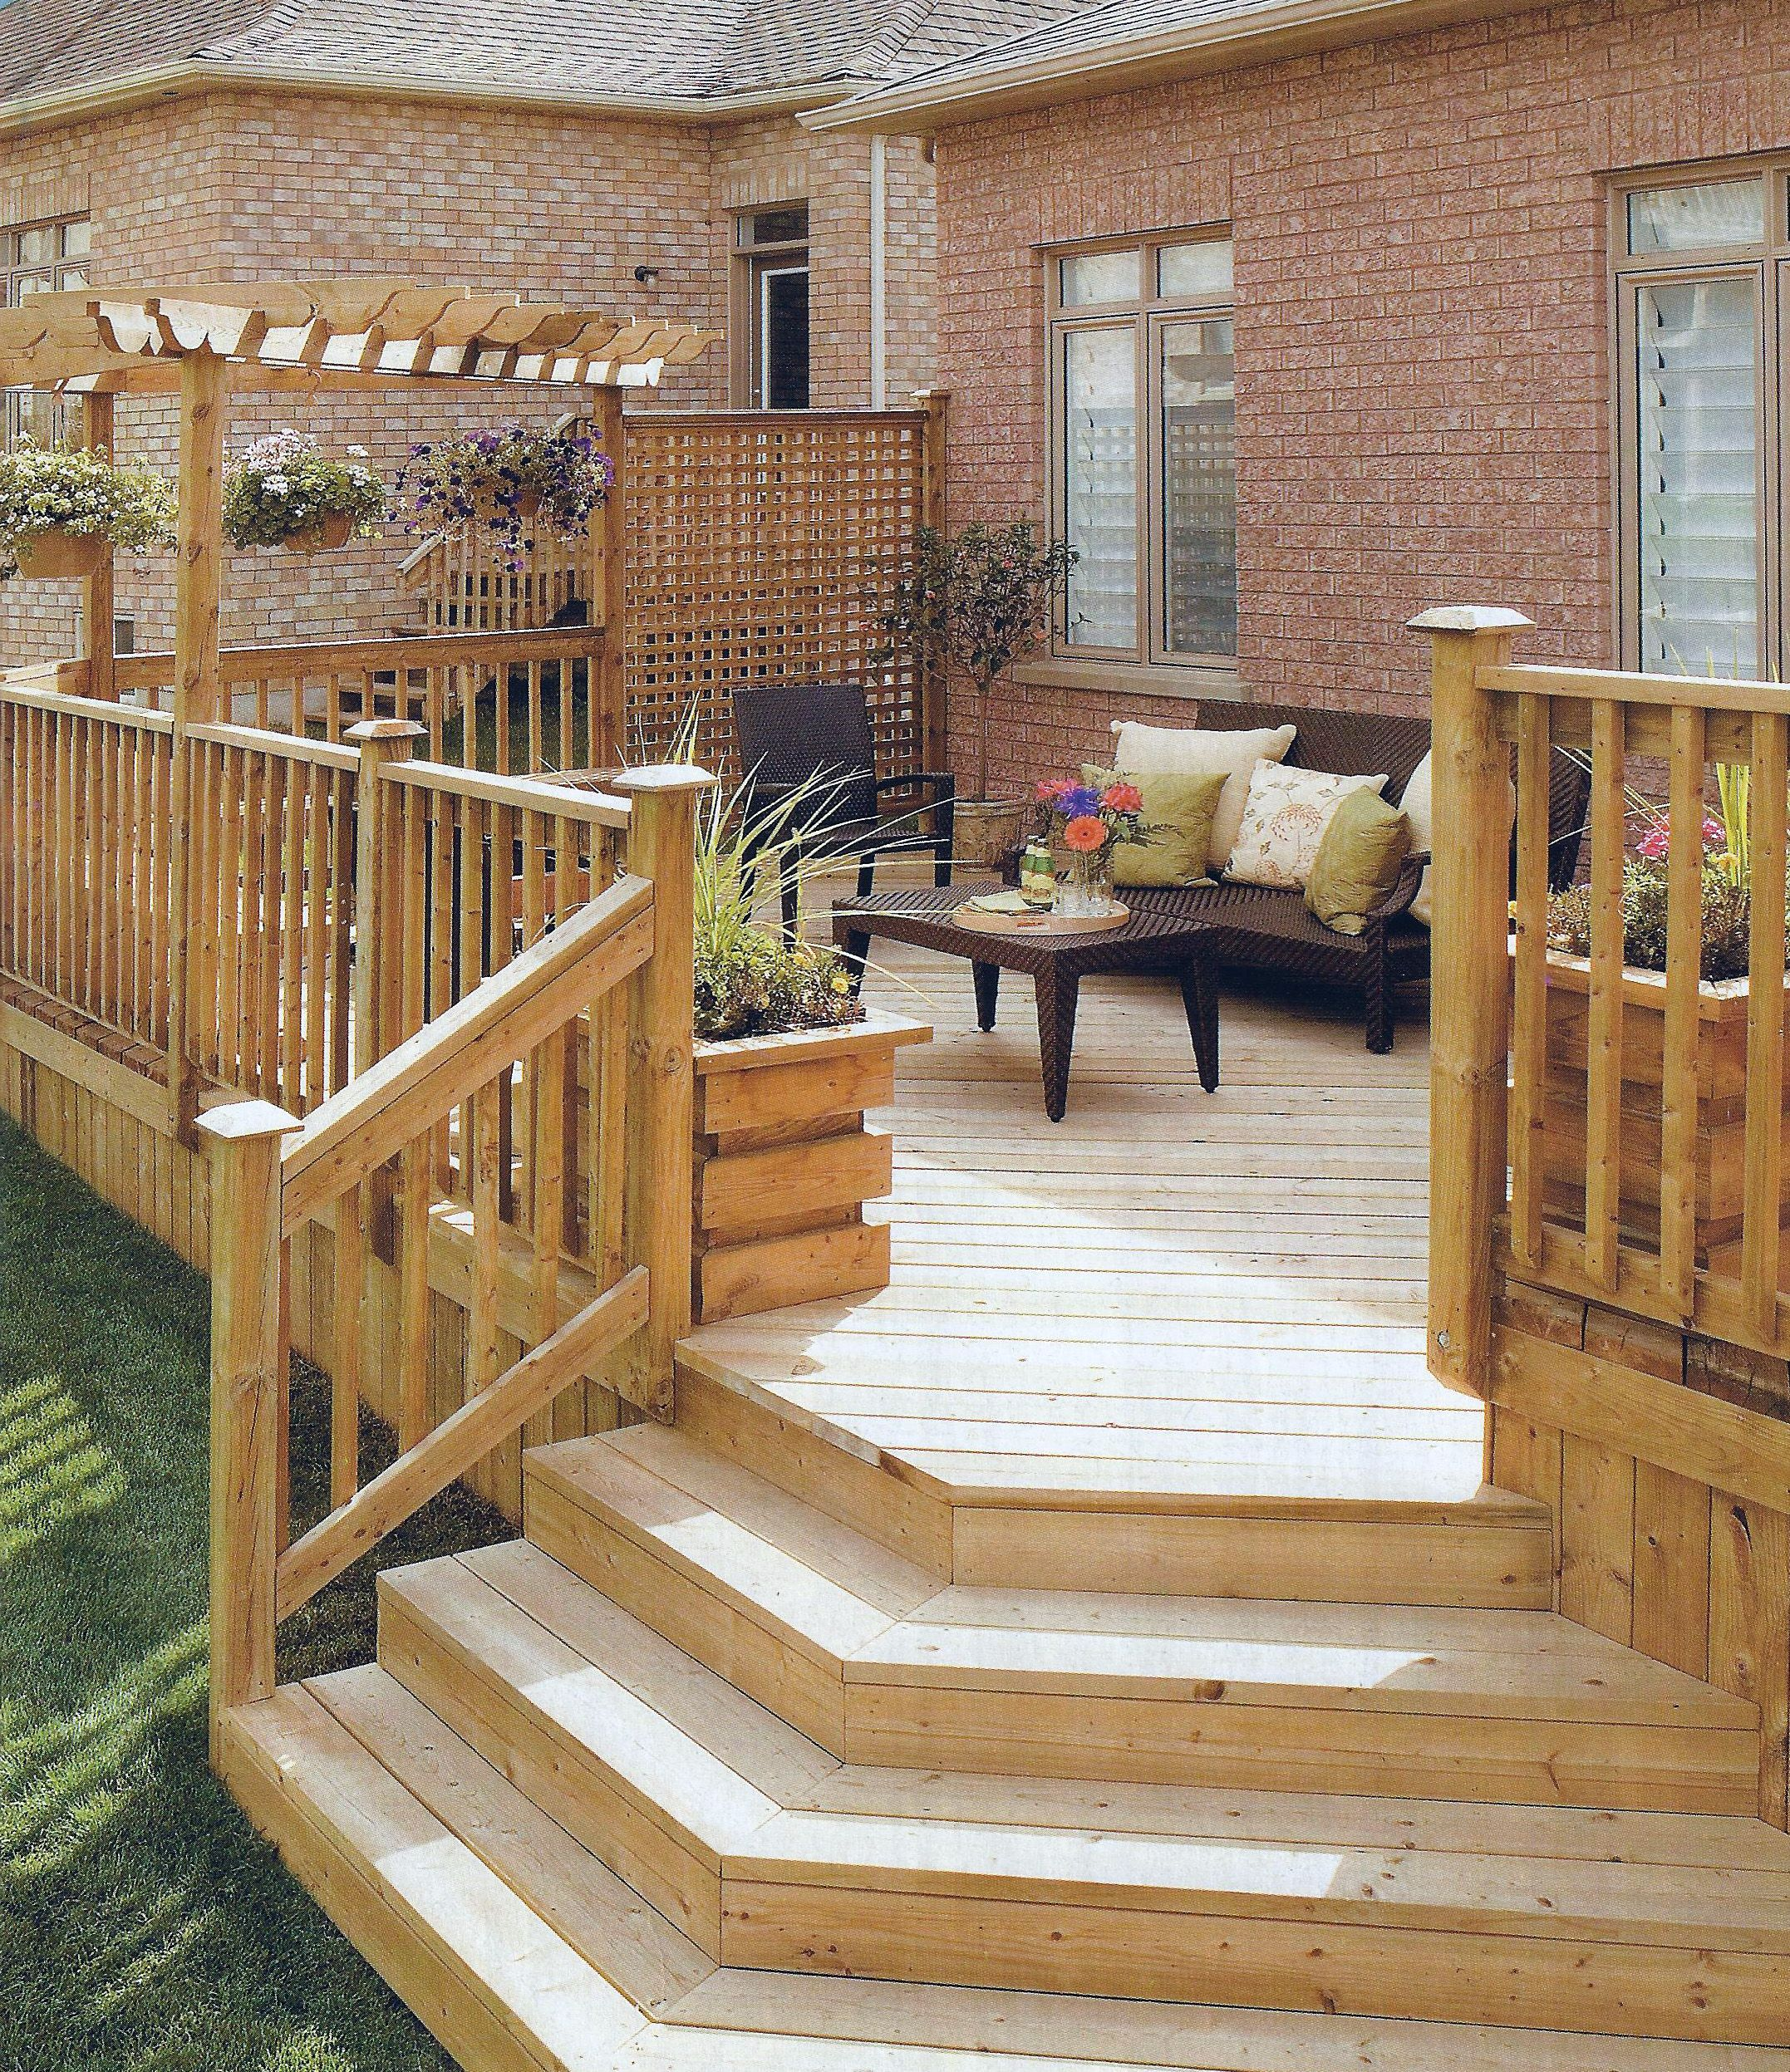 Best Wooden Deck With Lattice Privacy Partition Likes Stair 640 x 480